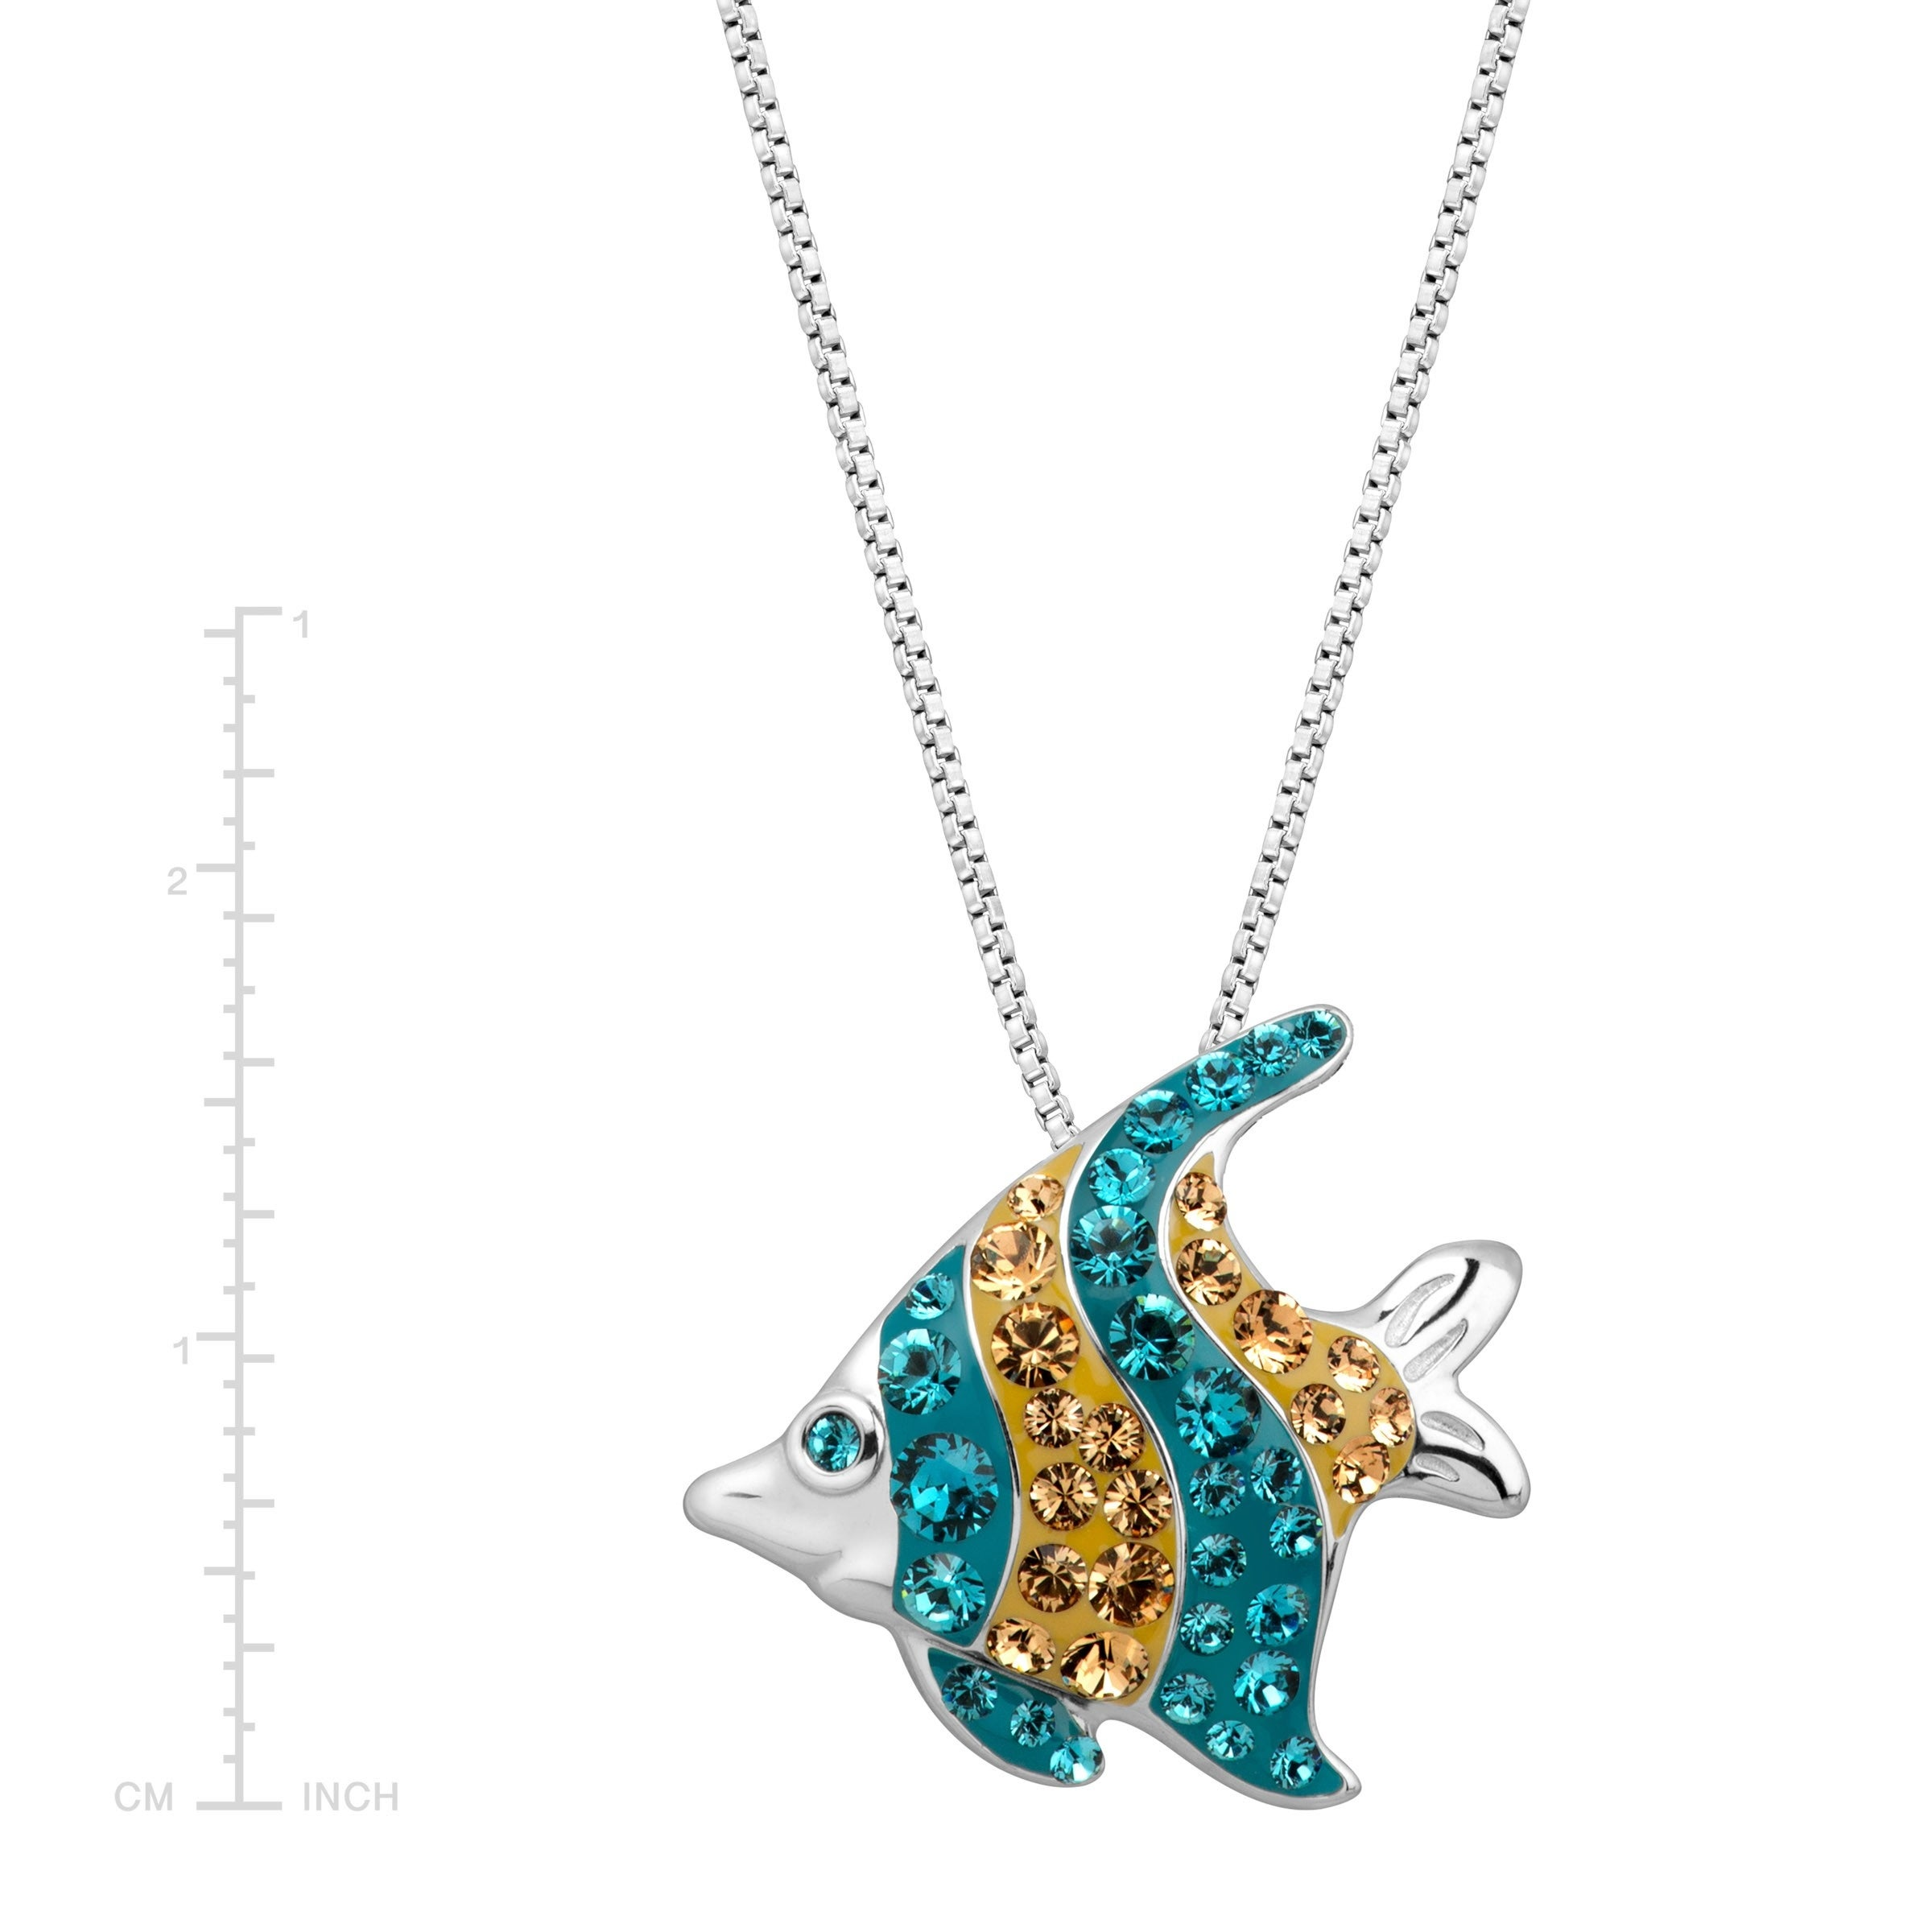 jewelry necklace silver fish mm stone plated mood product pendant igm